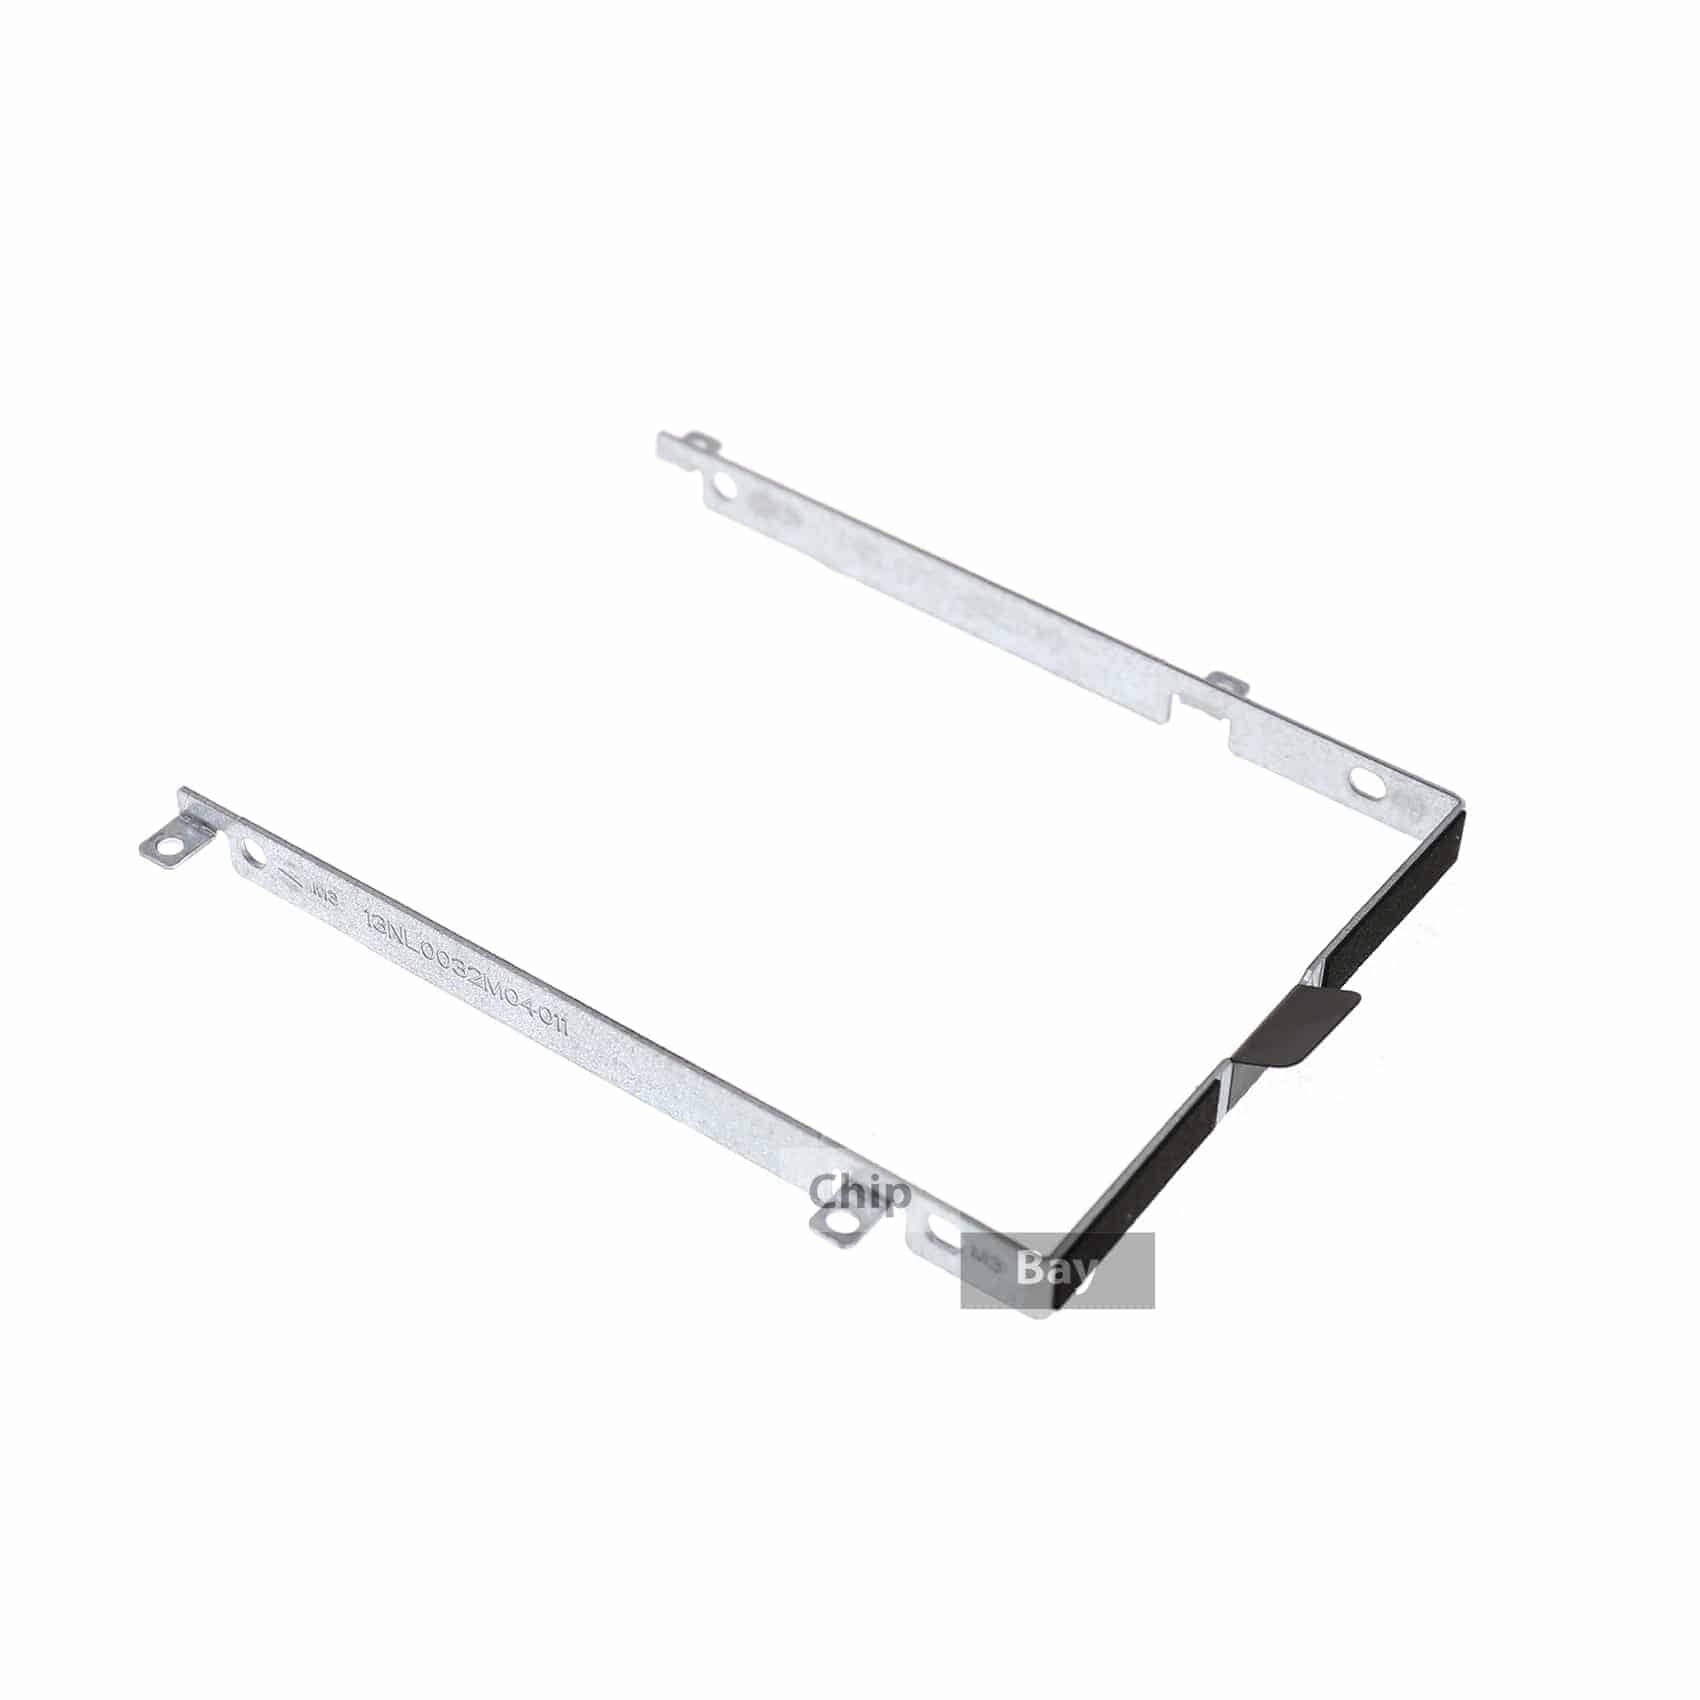 Genuine Asus L402n Laptop Hdd Hard Drive Support Bracket